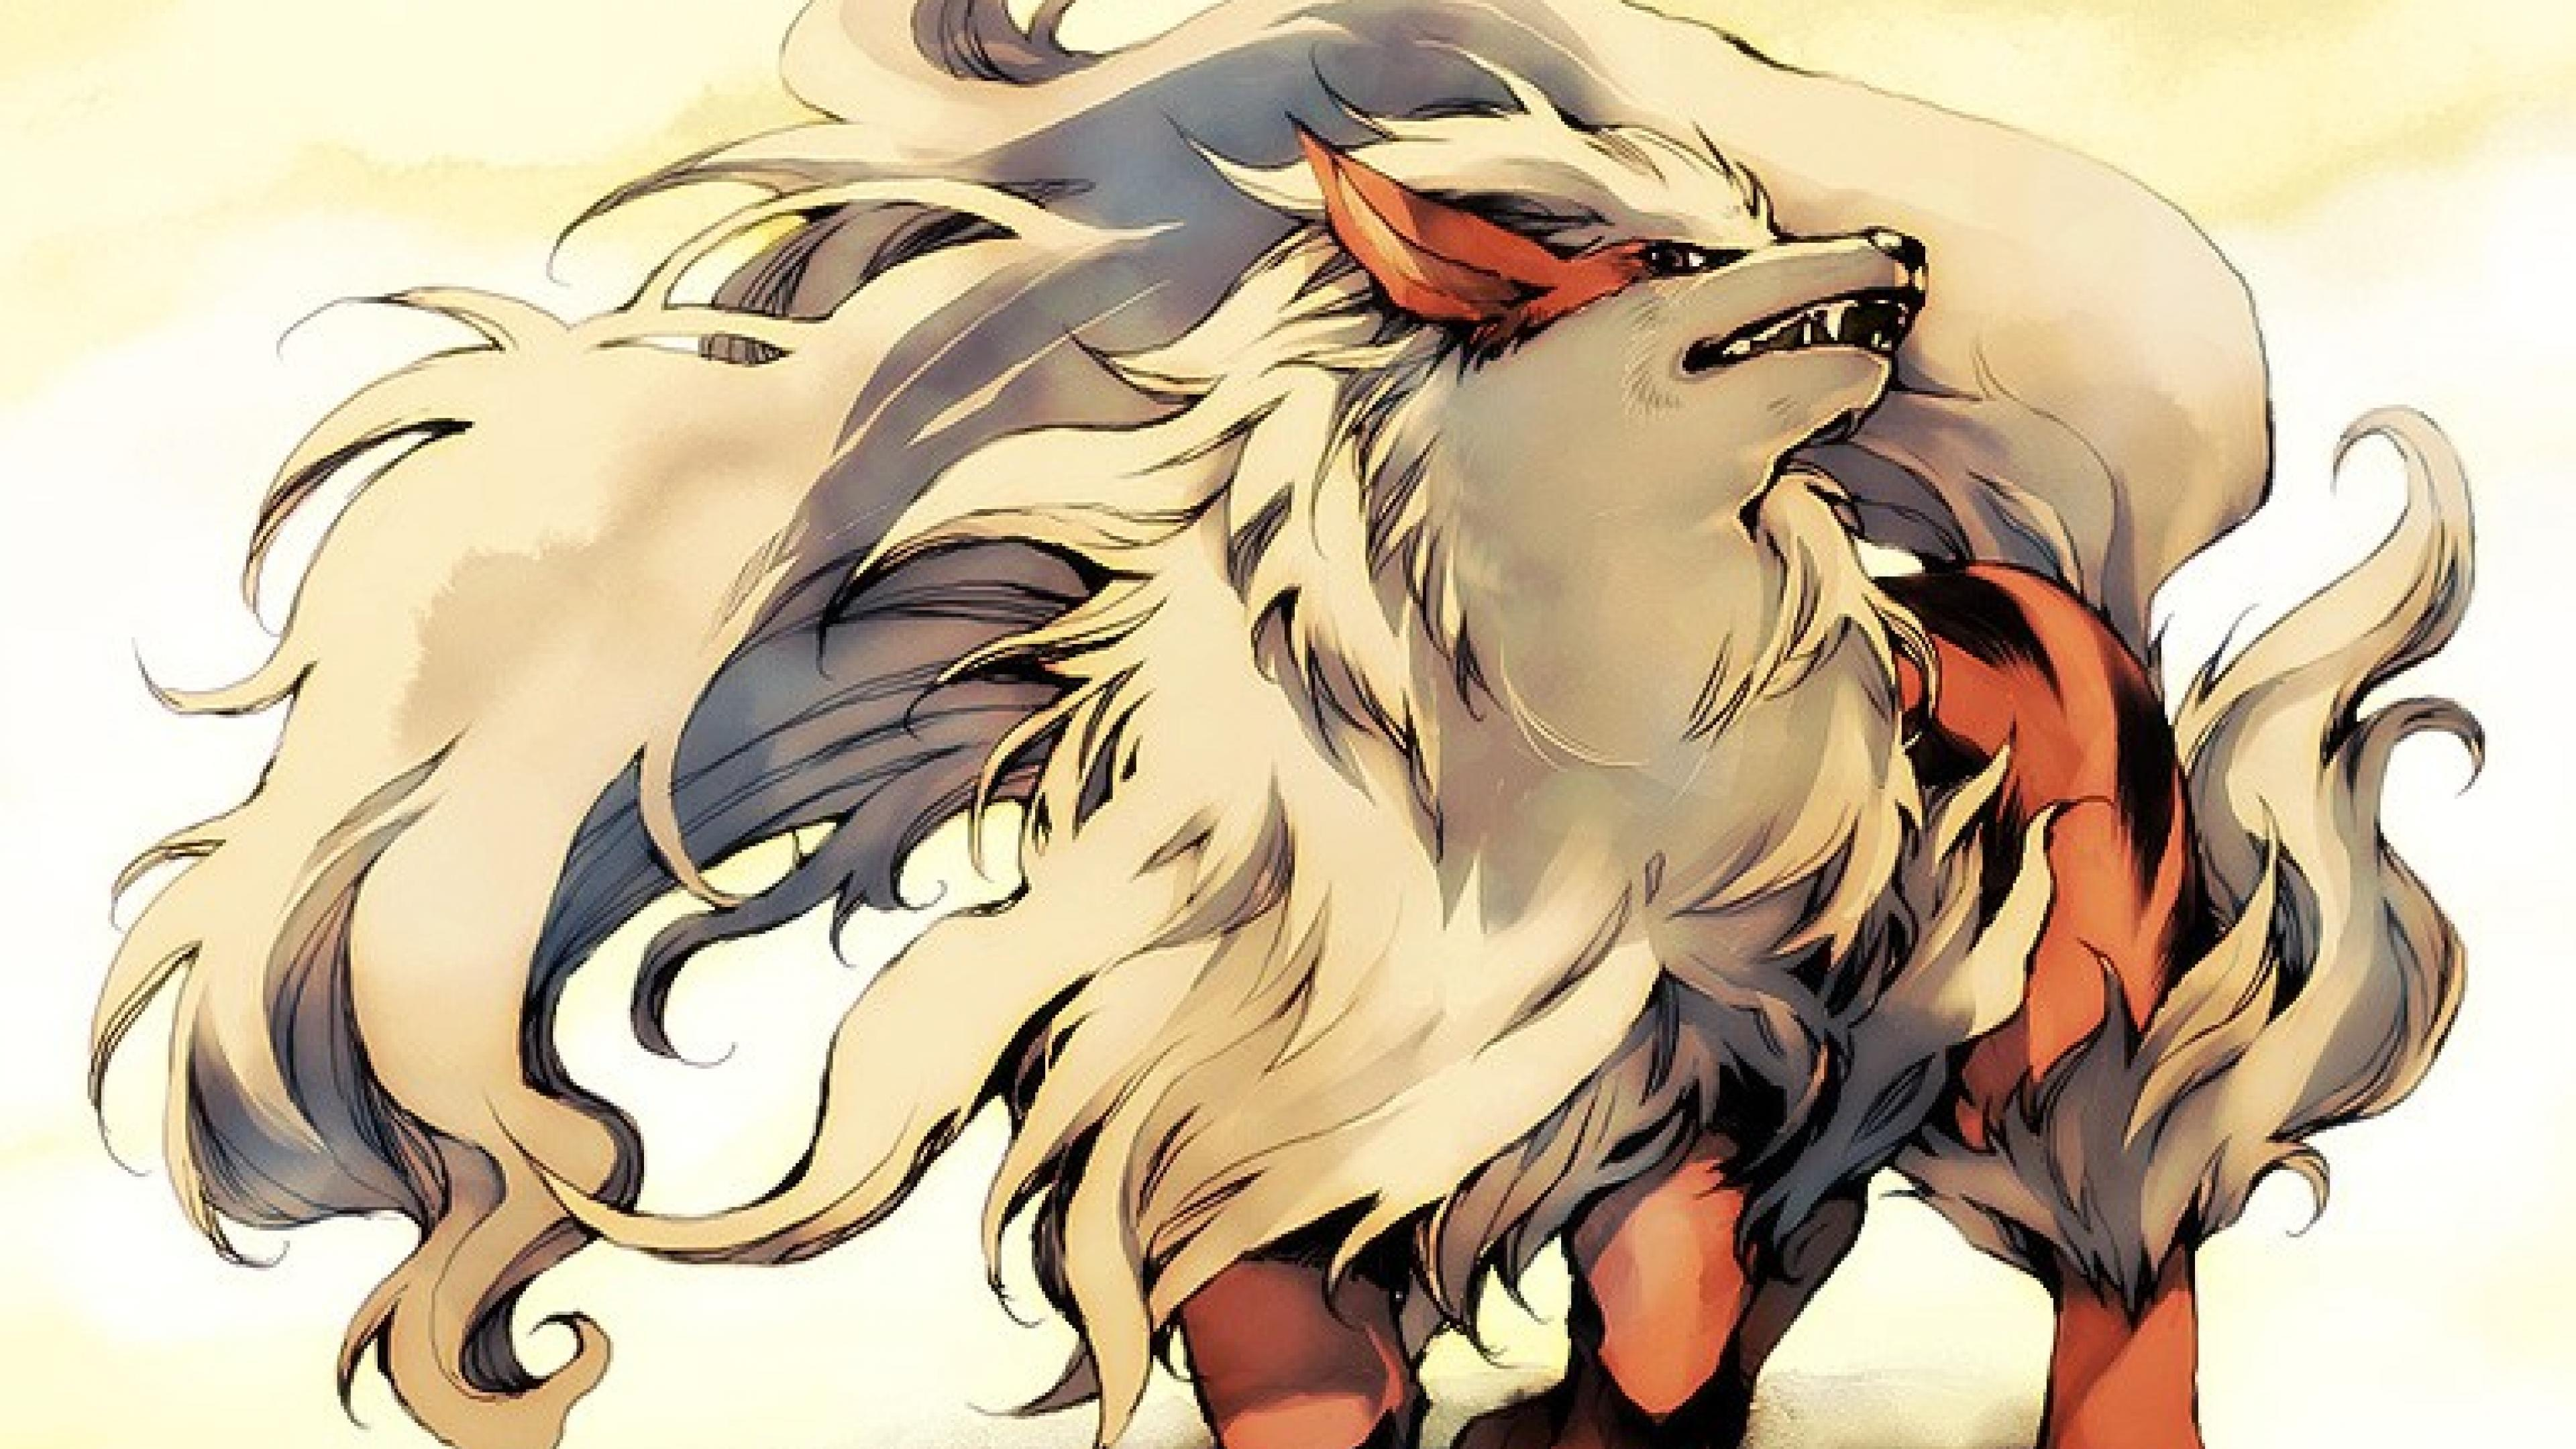 88+ Arcanine Wallpaper - Arcanine Wallpaper By Turbot2, Tiger Gal ...